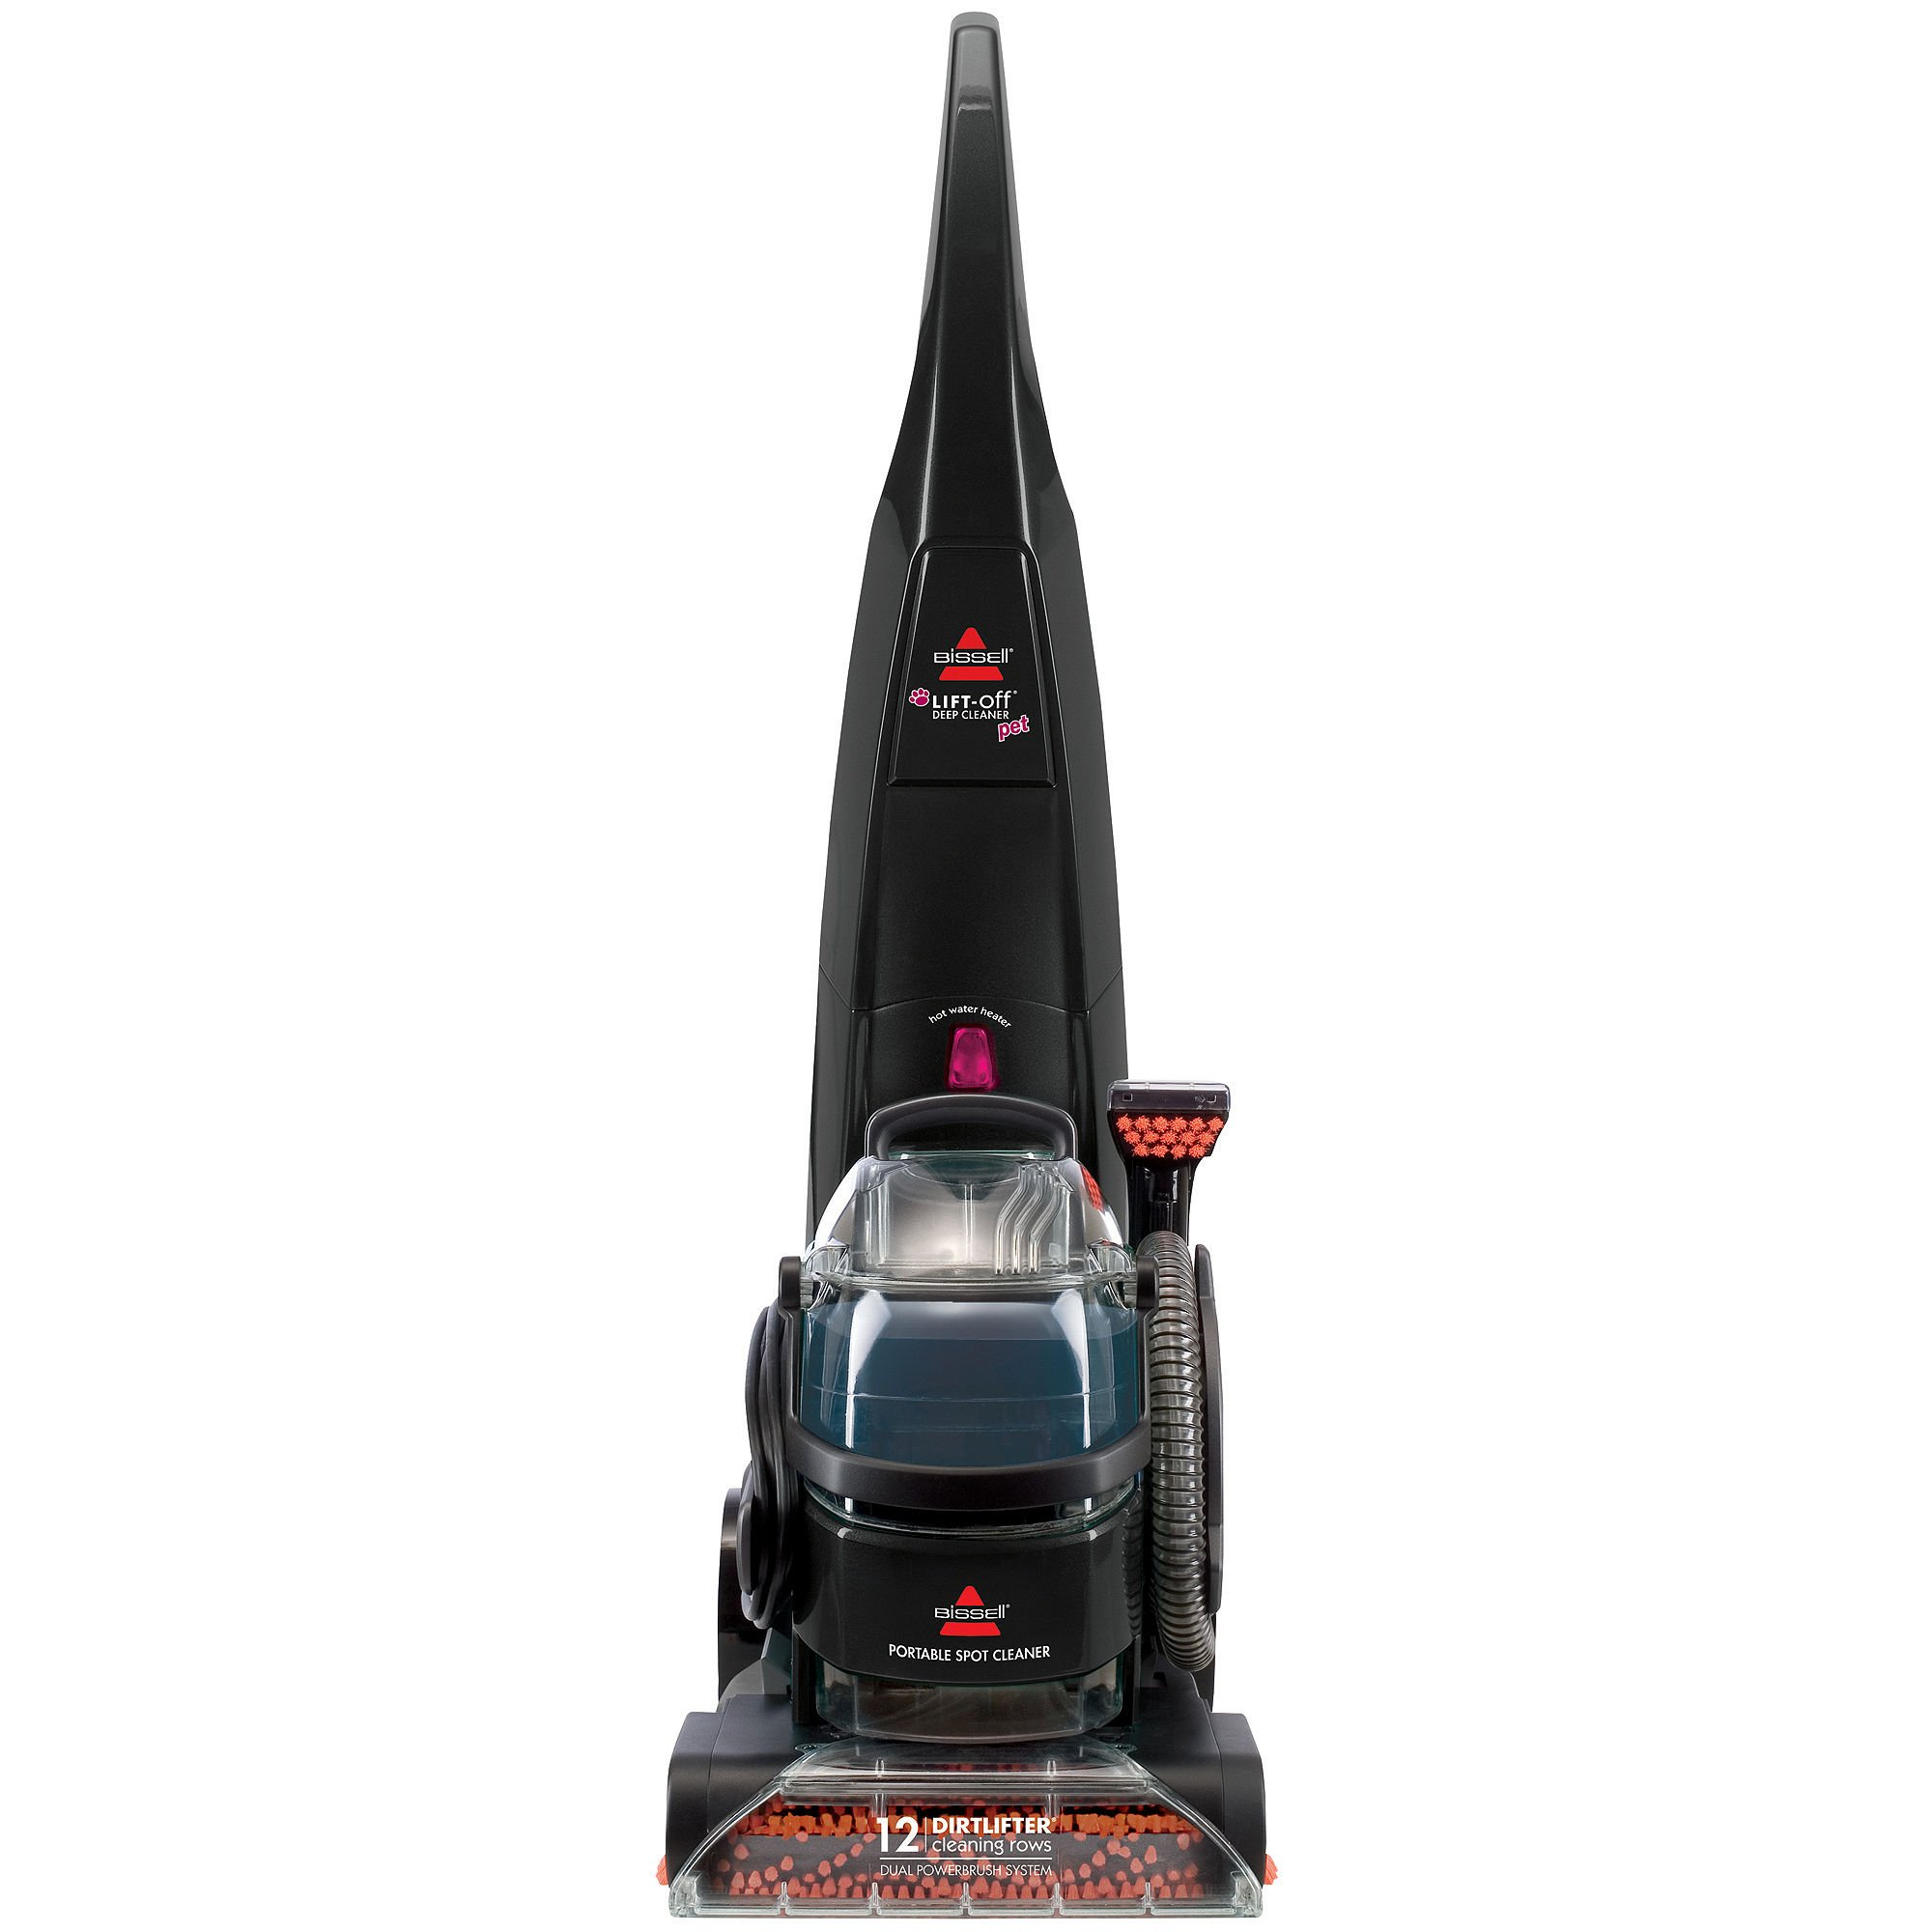 Bissell DeepClean Lift-Off 66E12 Pet 2-in-1 Spot Cleaner by Bissell (Image #1)